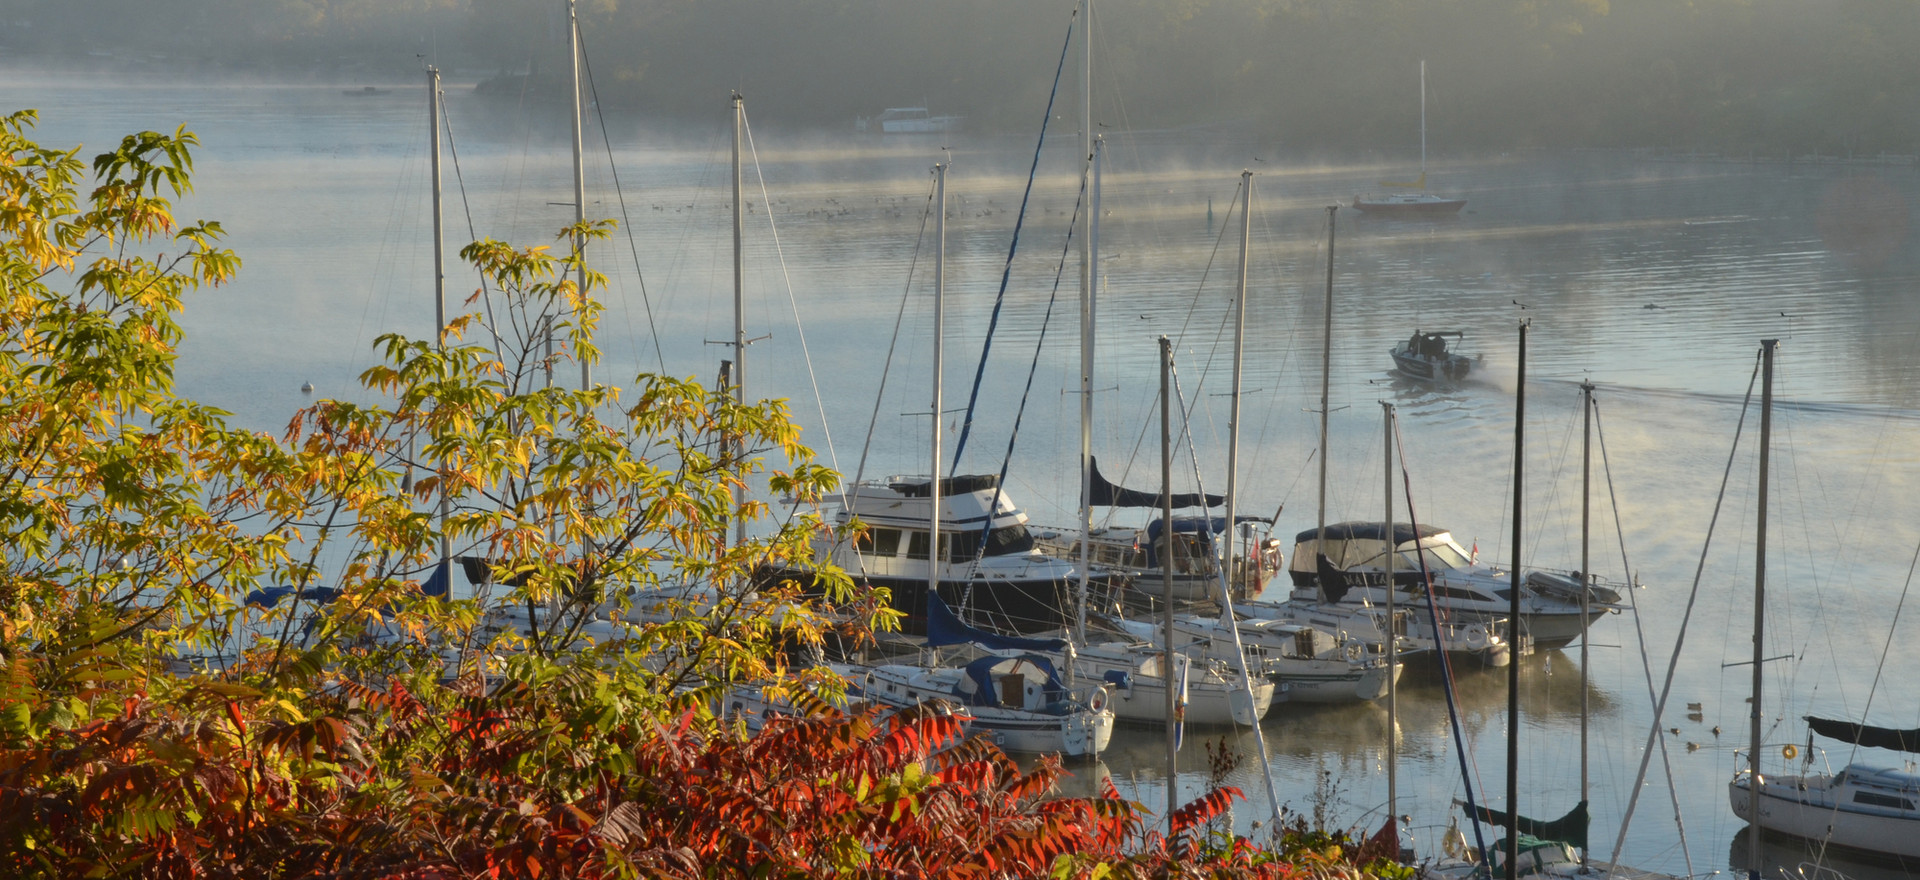 Misty Picton Harbour Photo Credit: © Peggy de Witt